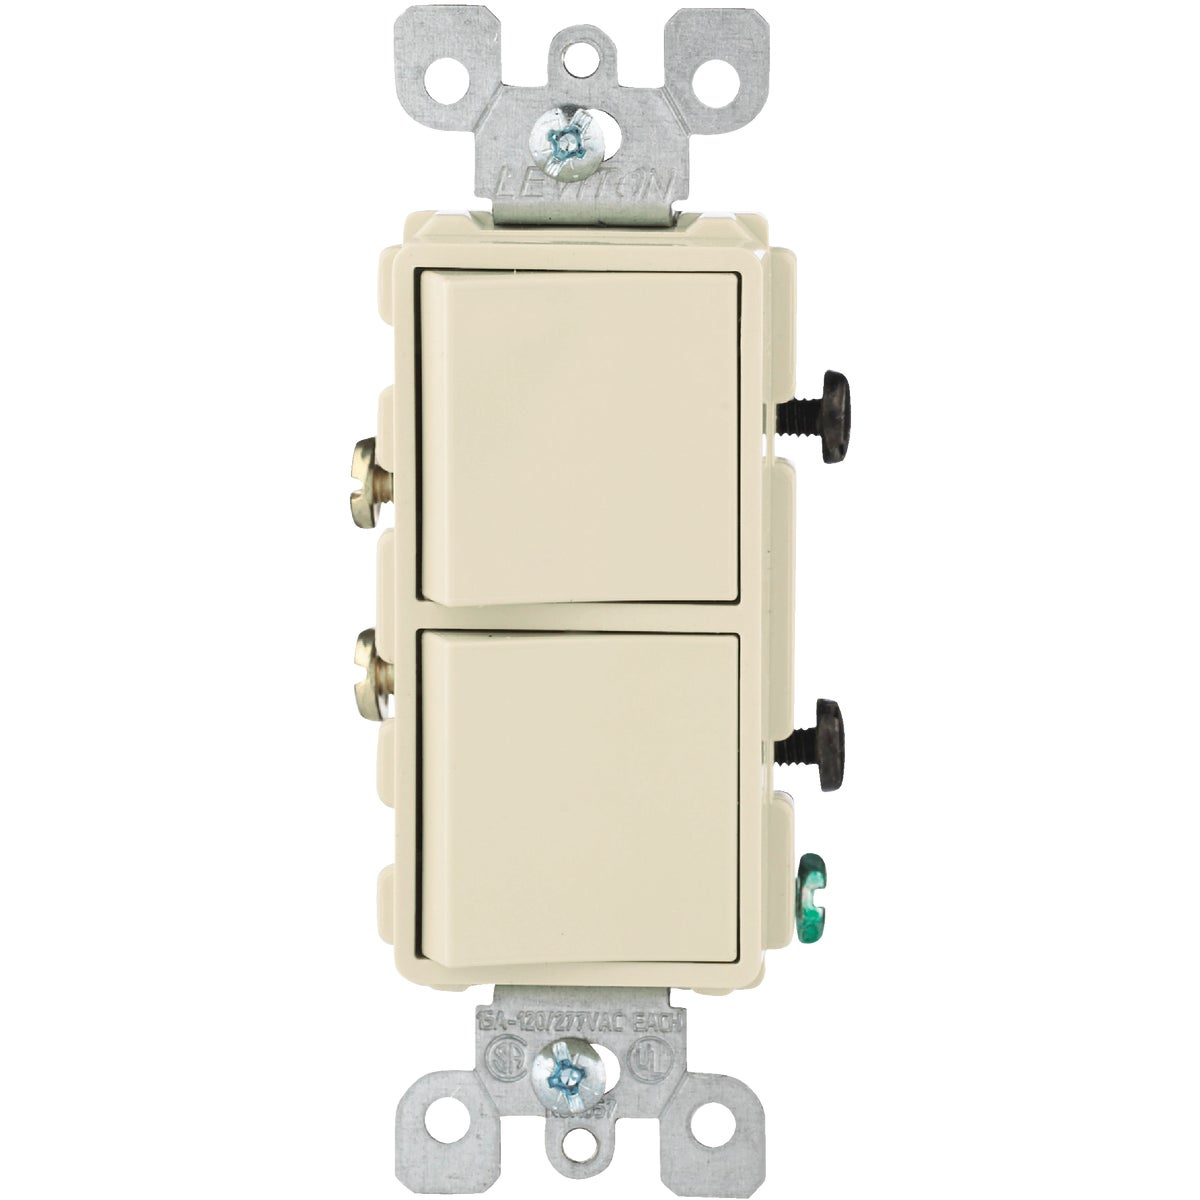 IVORY DUPLEX SWITCH - R51-05634I by Leviton Mfg Co